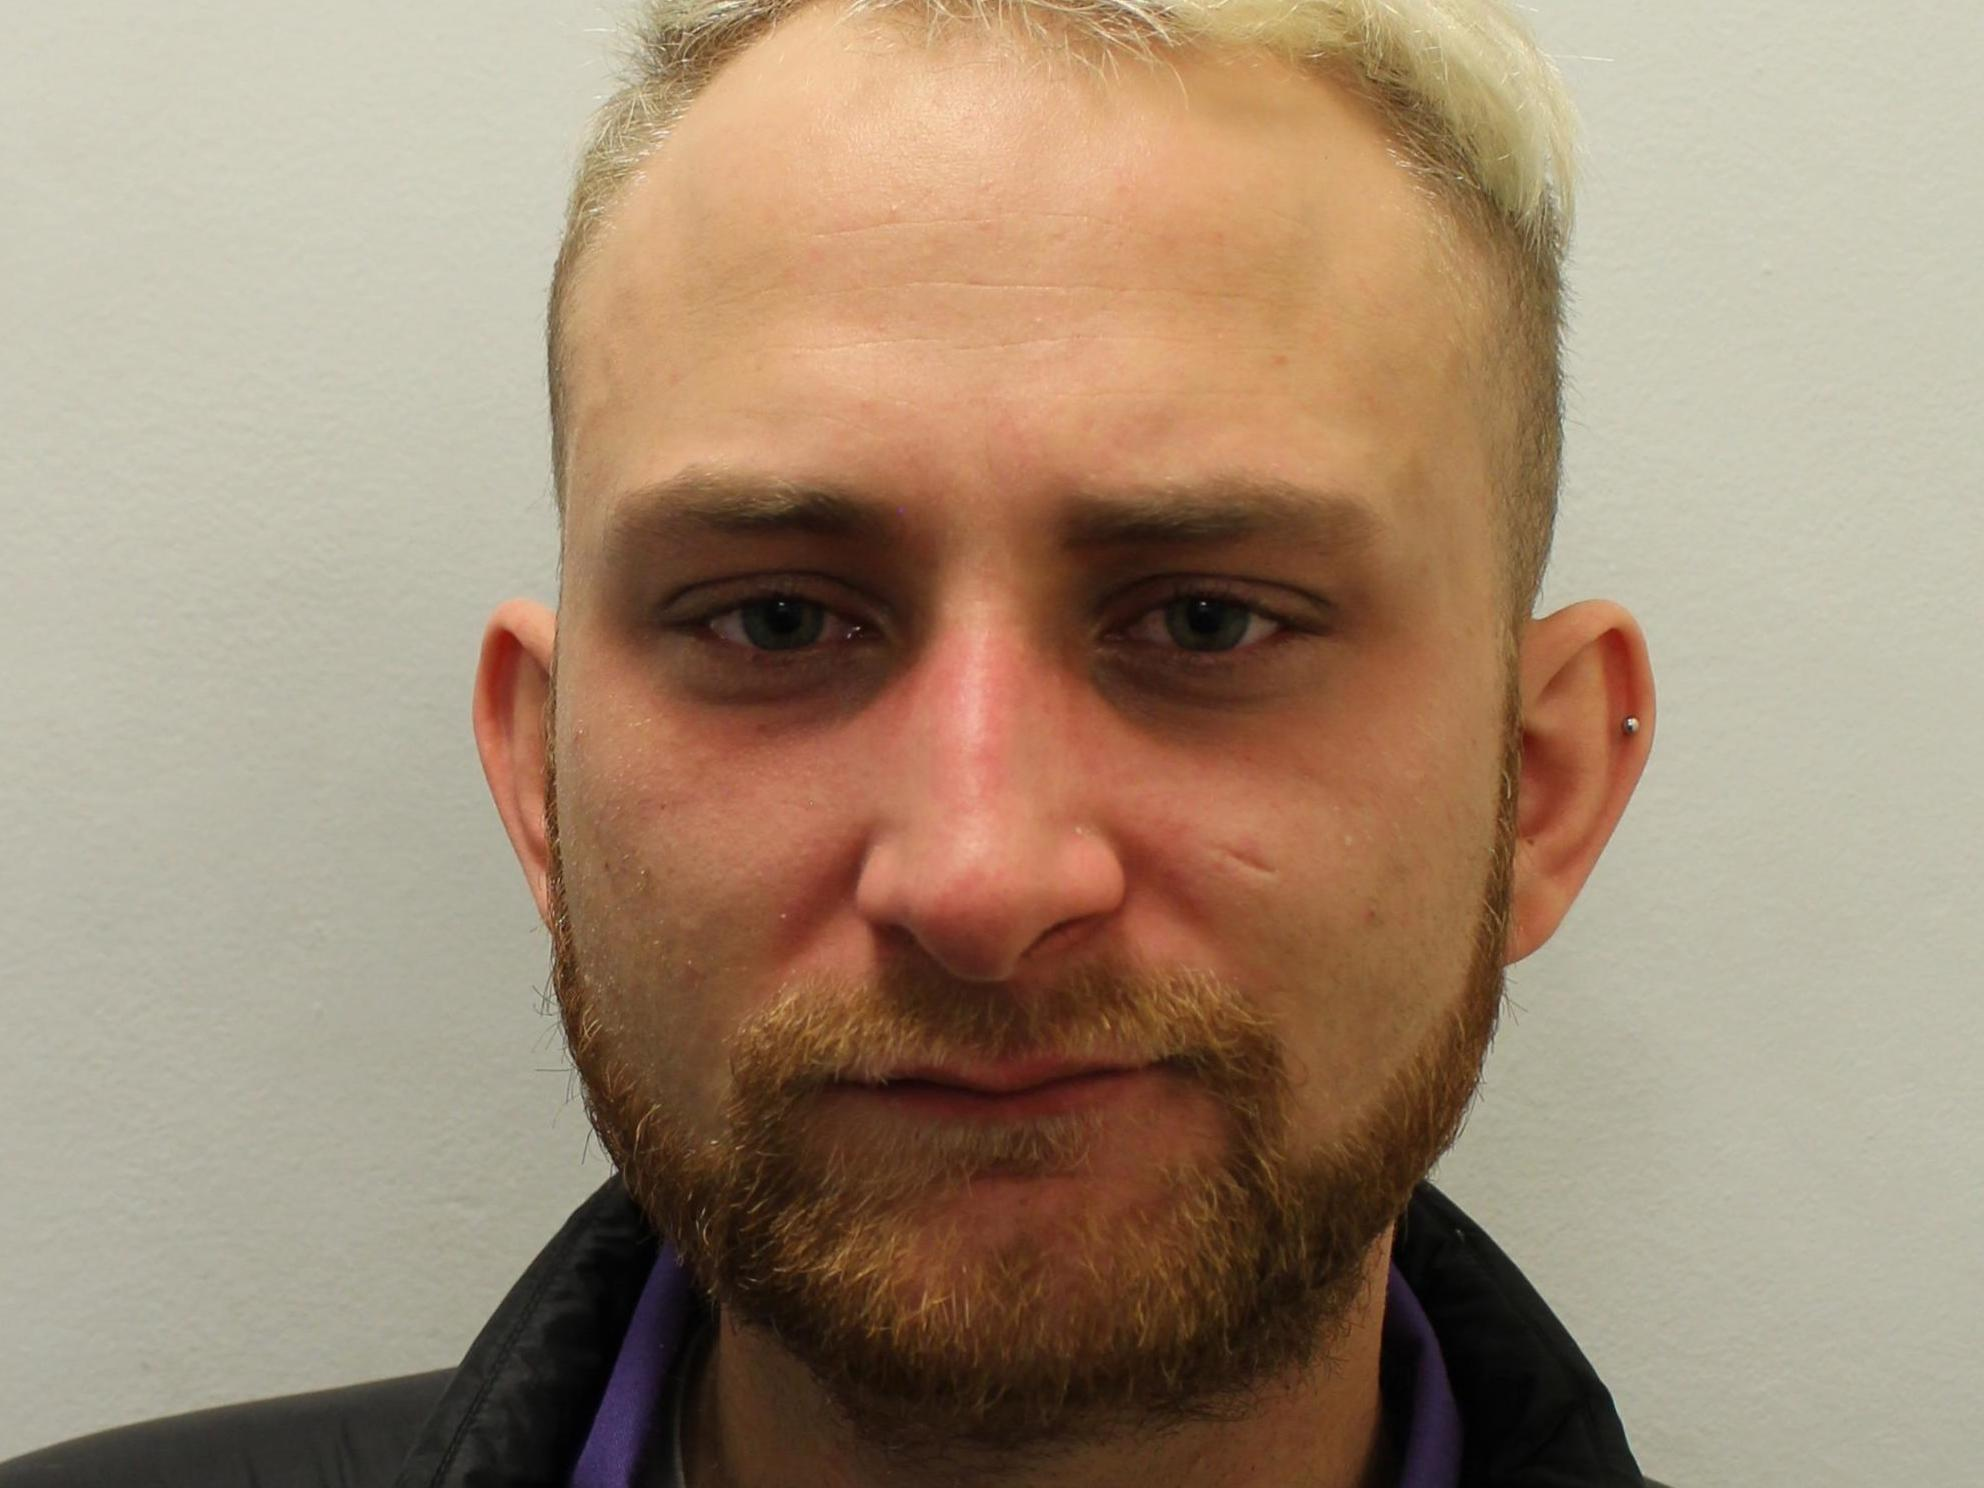 Man jailed for blackmailing Grindr dates by threatening to leak sexual photos